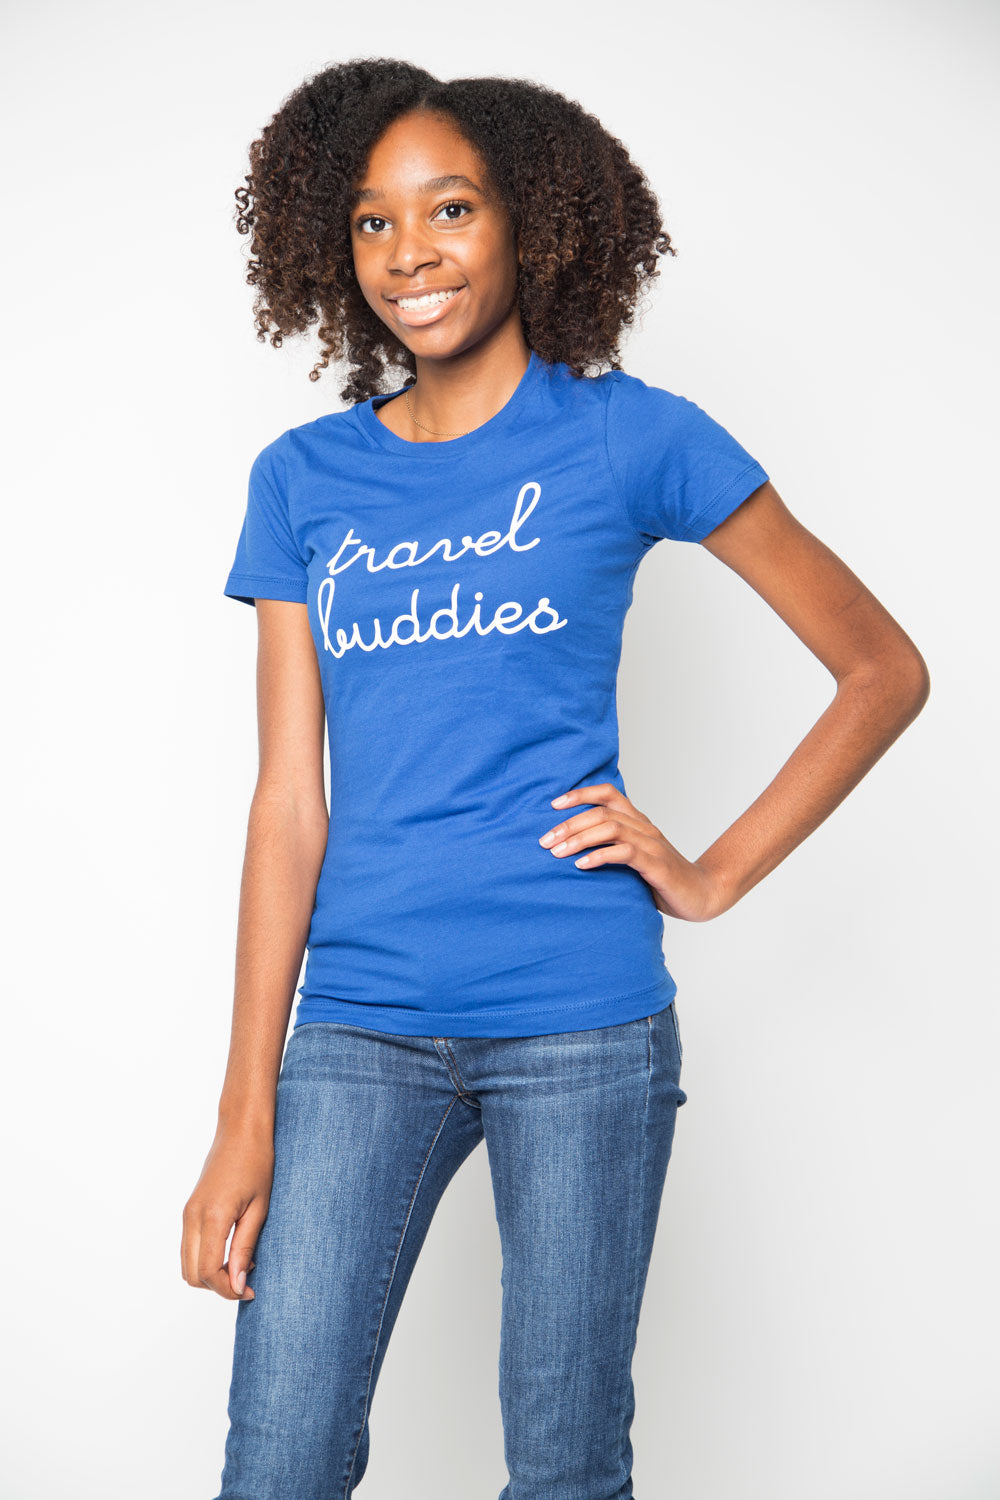 Travel Buddies Shirt in Blue - Trunk Series